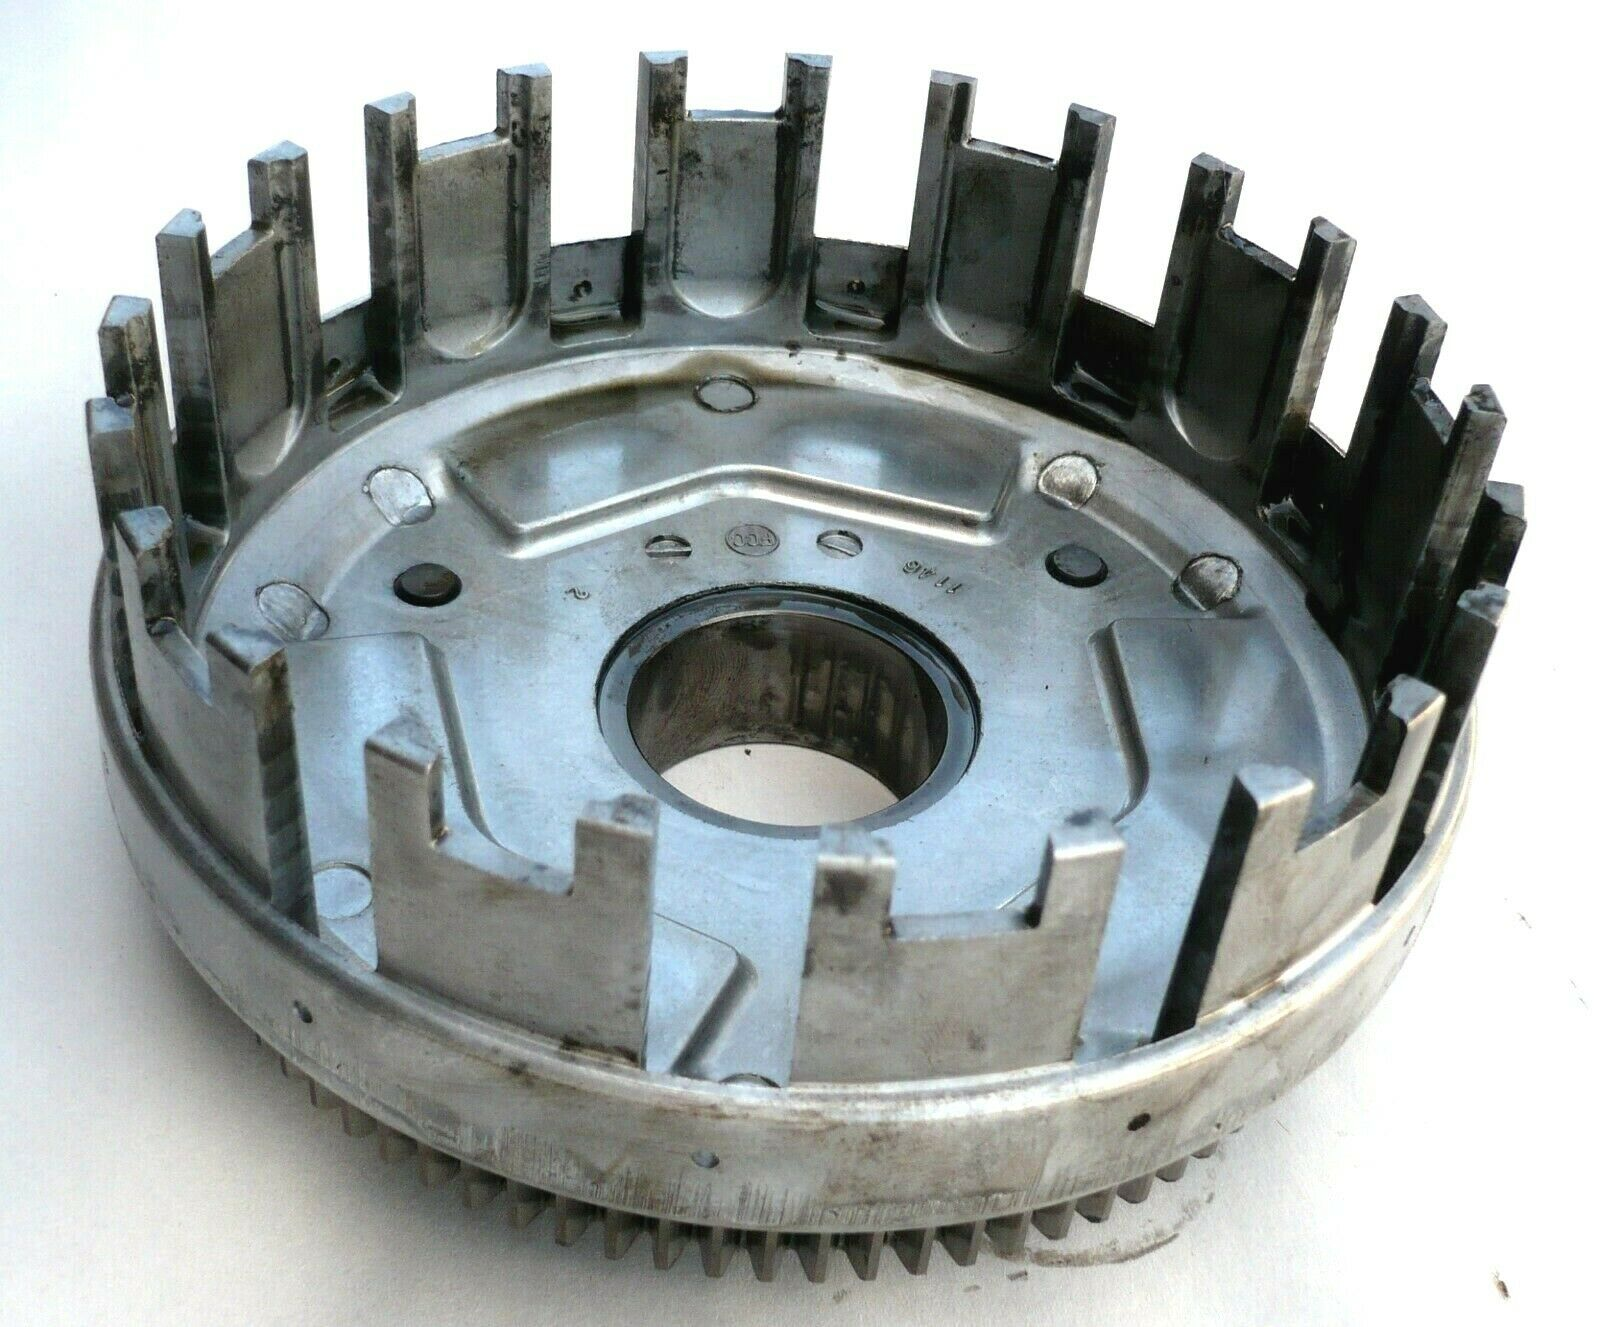 https://www.ebay.com/str/bizylizy2/All-Motorcycle-Parts/_i.html?_storecat=12558081013